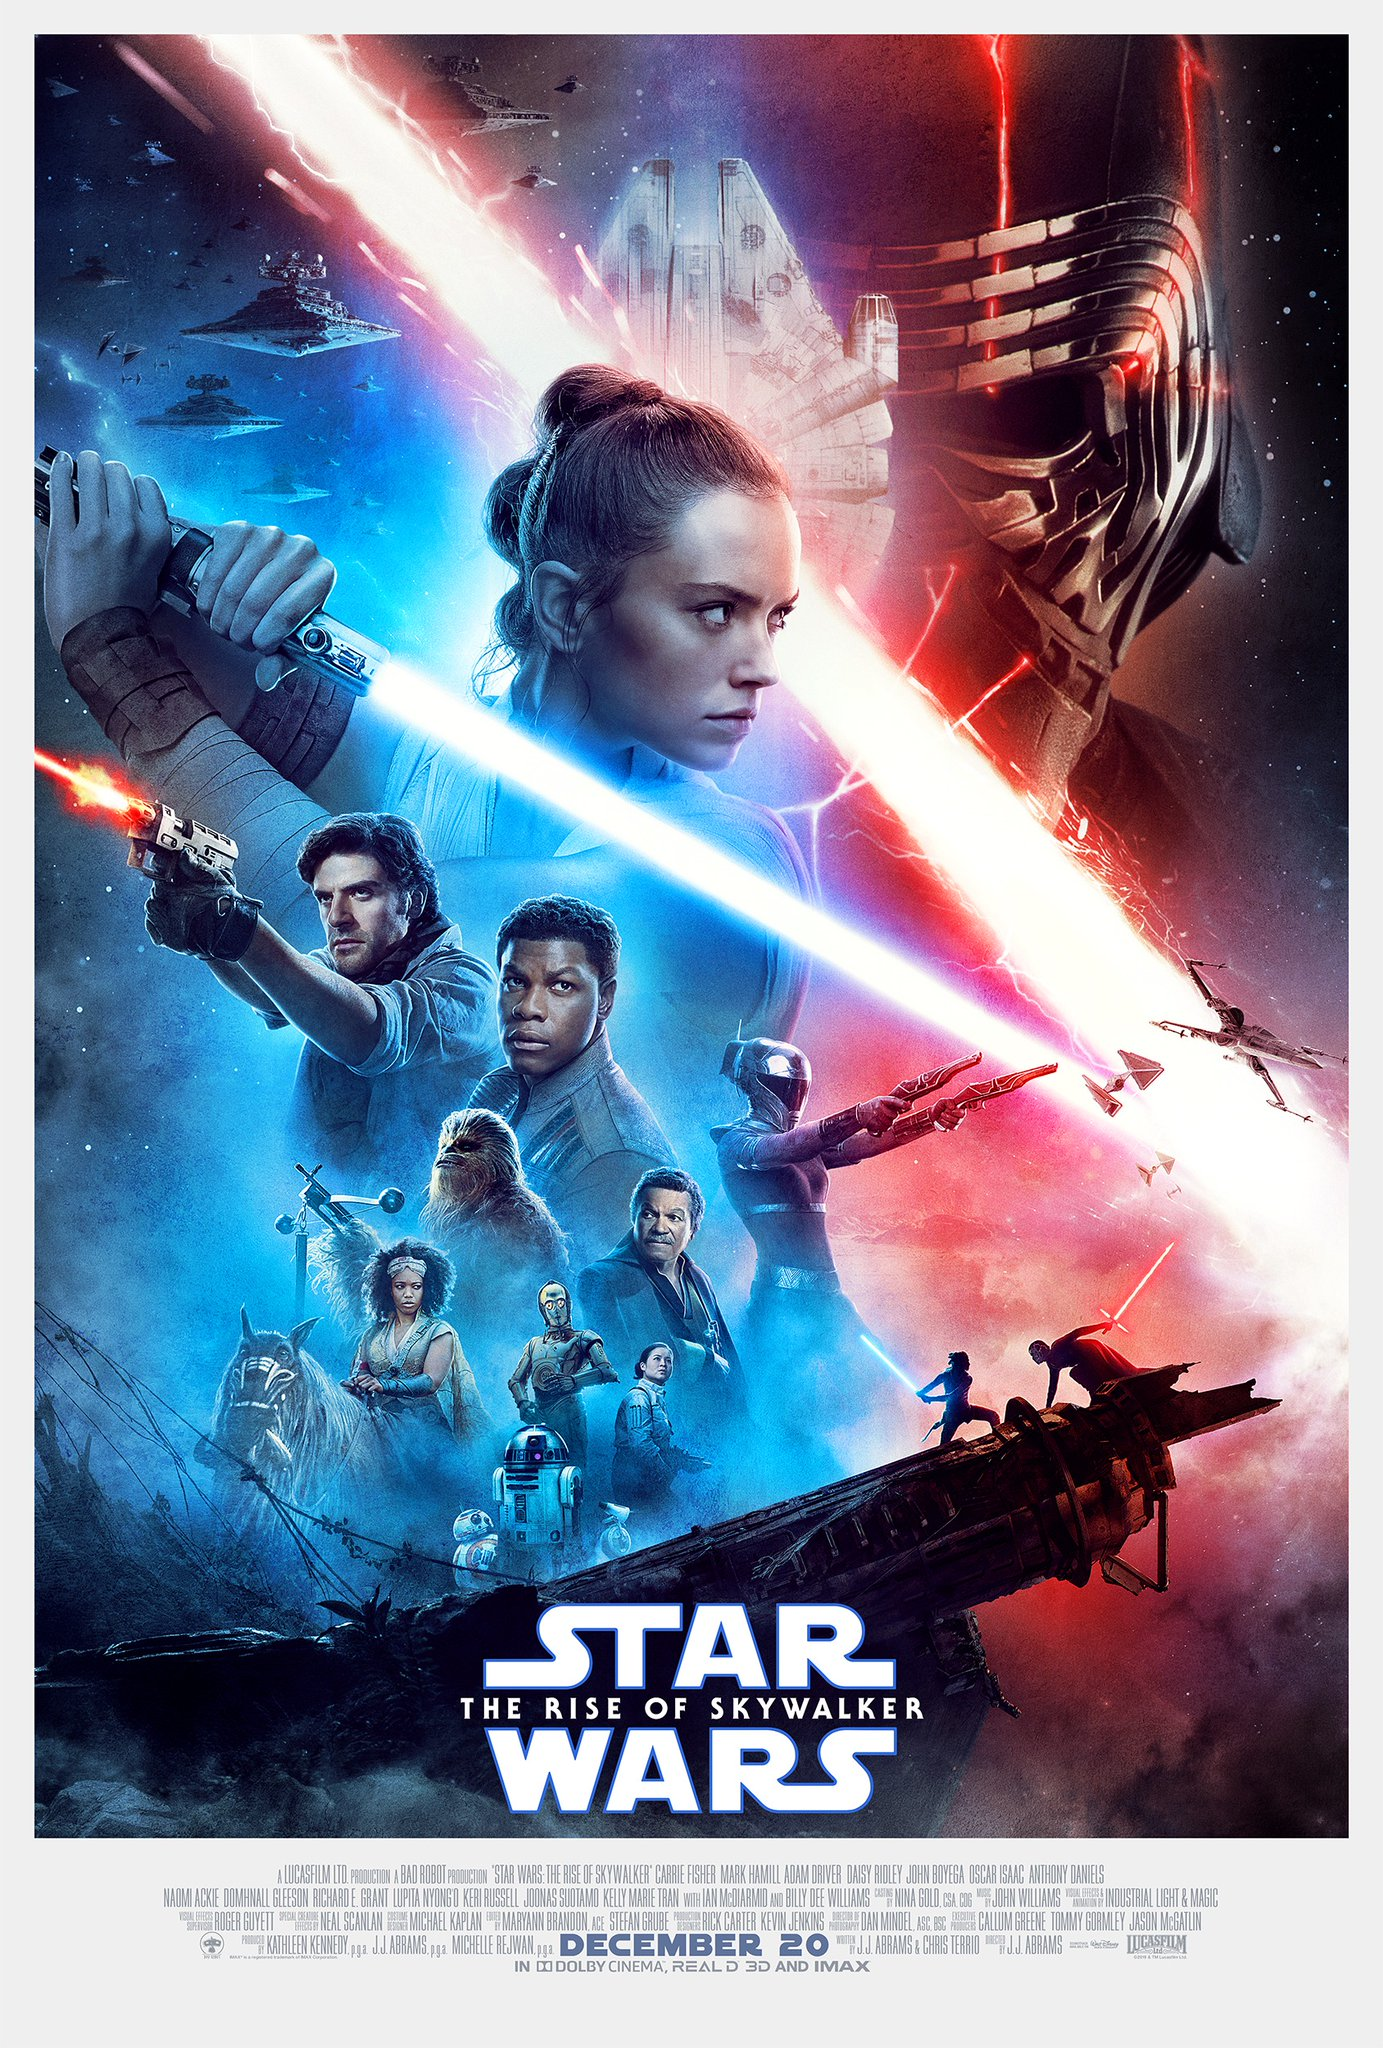 ŽVAIGŽDŽIŲ KARAI. SKAIVOKERIO IŠKILIMAS (2019) / Star Wars: Episode IX - The Rise of Skywalker